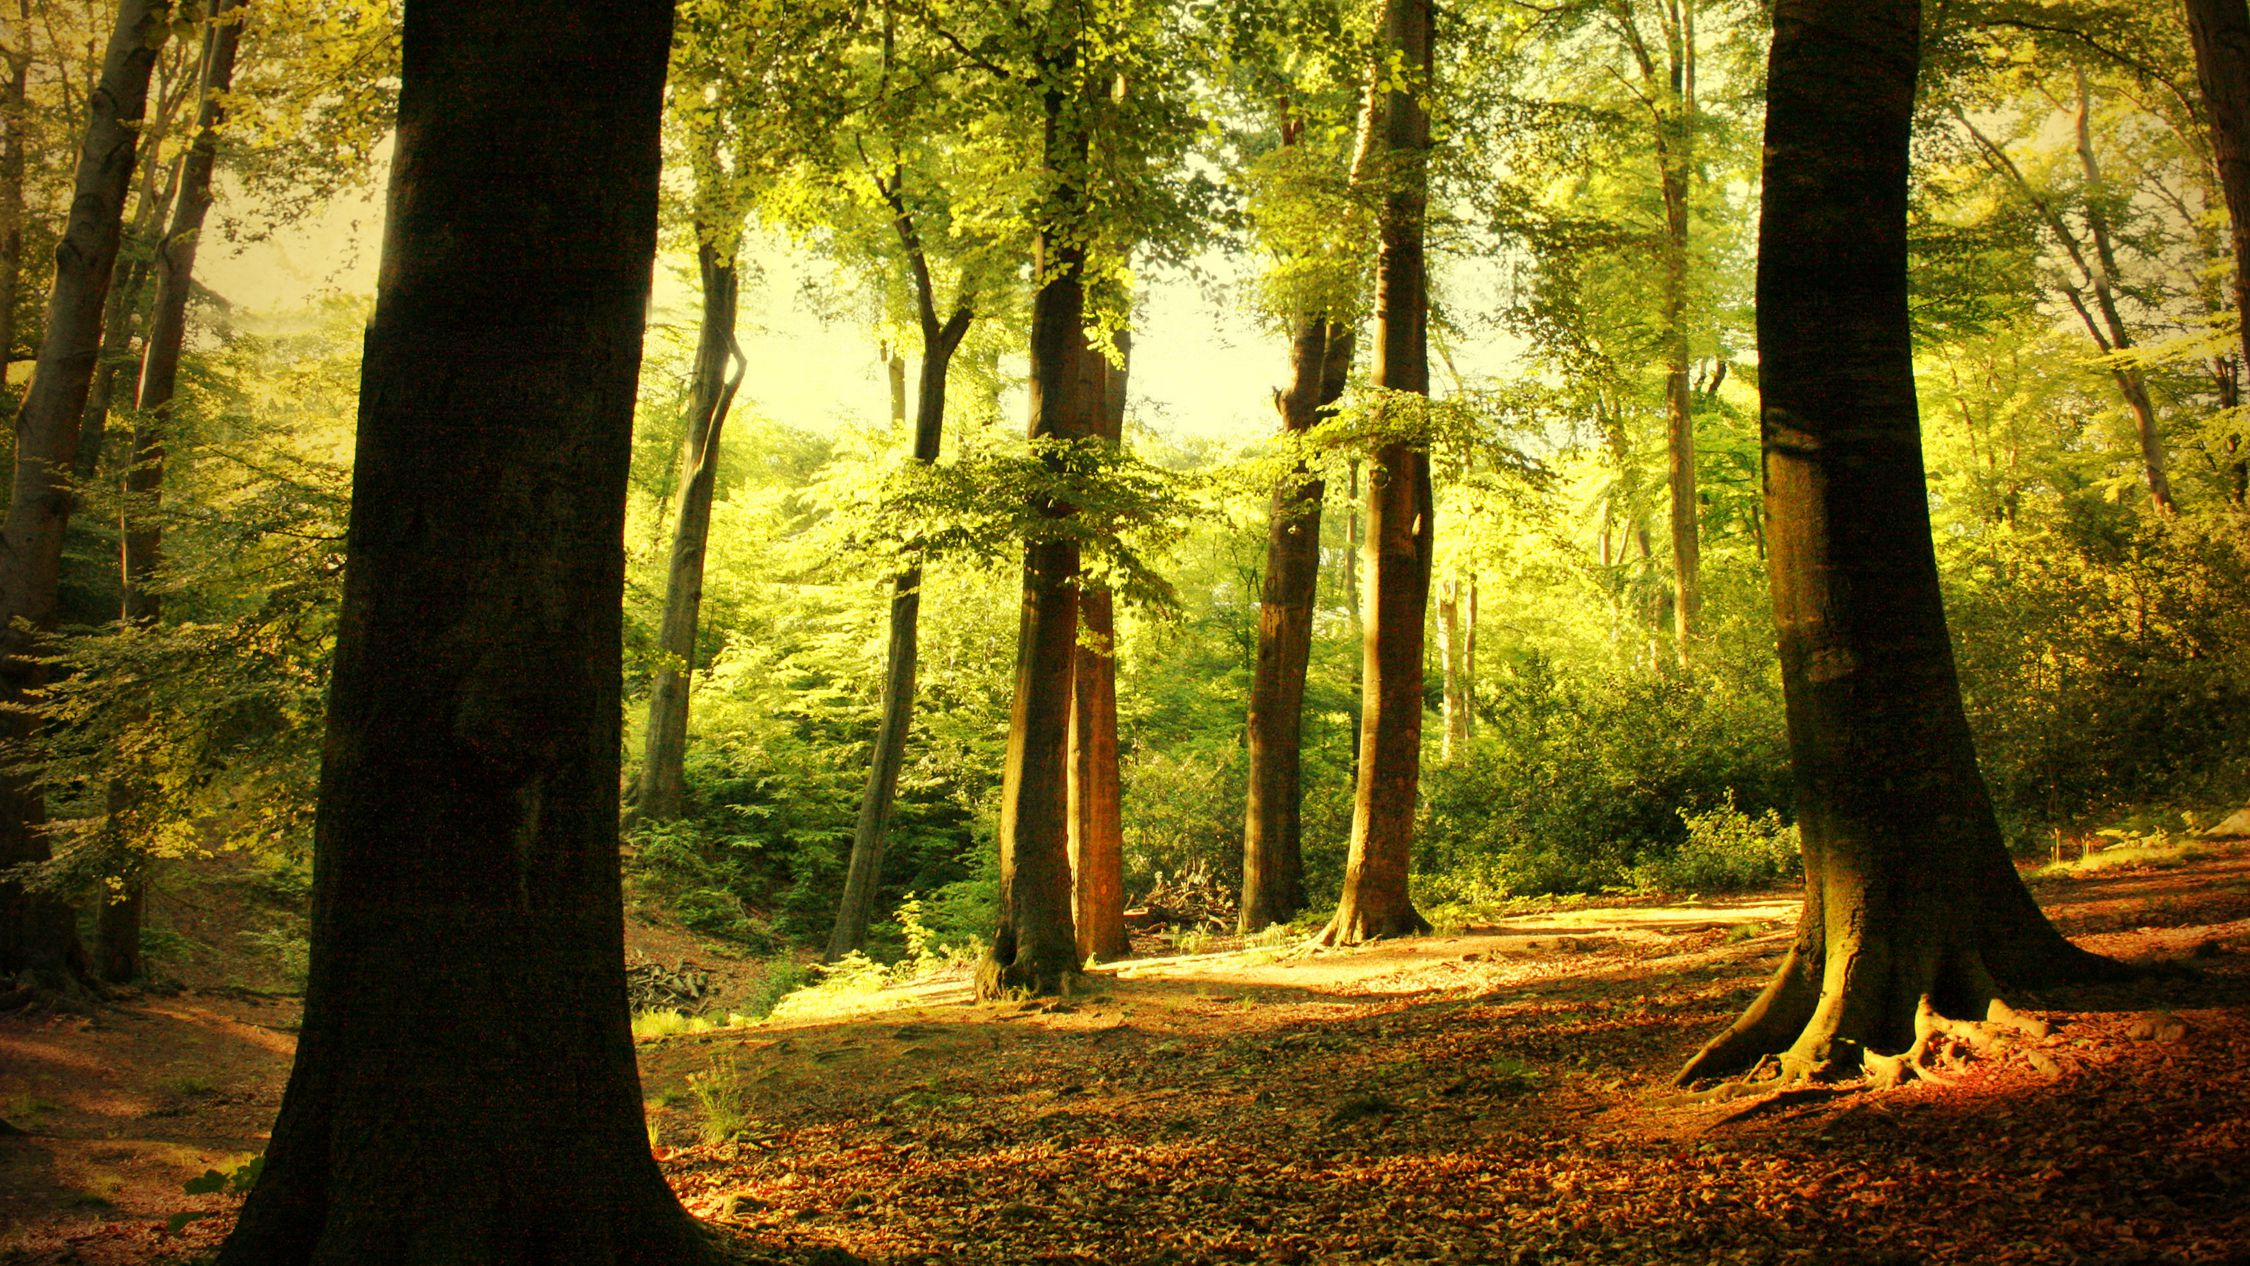 Eastern Deciduous Forests